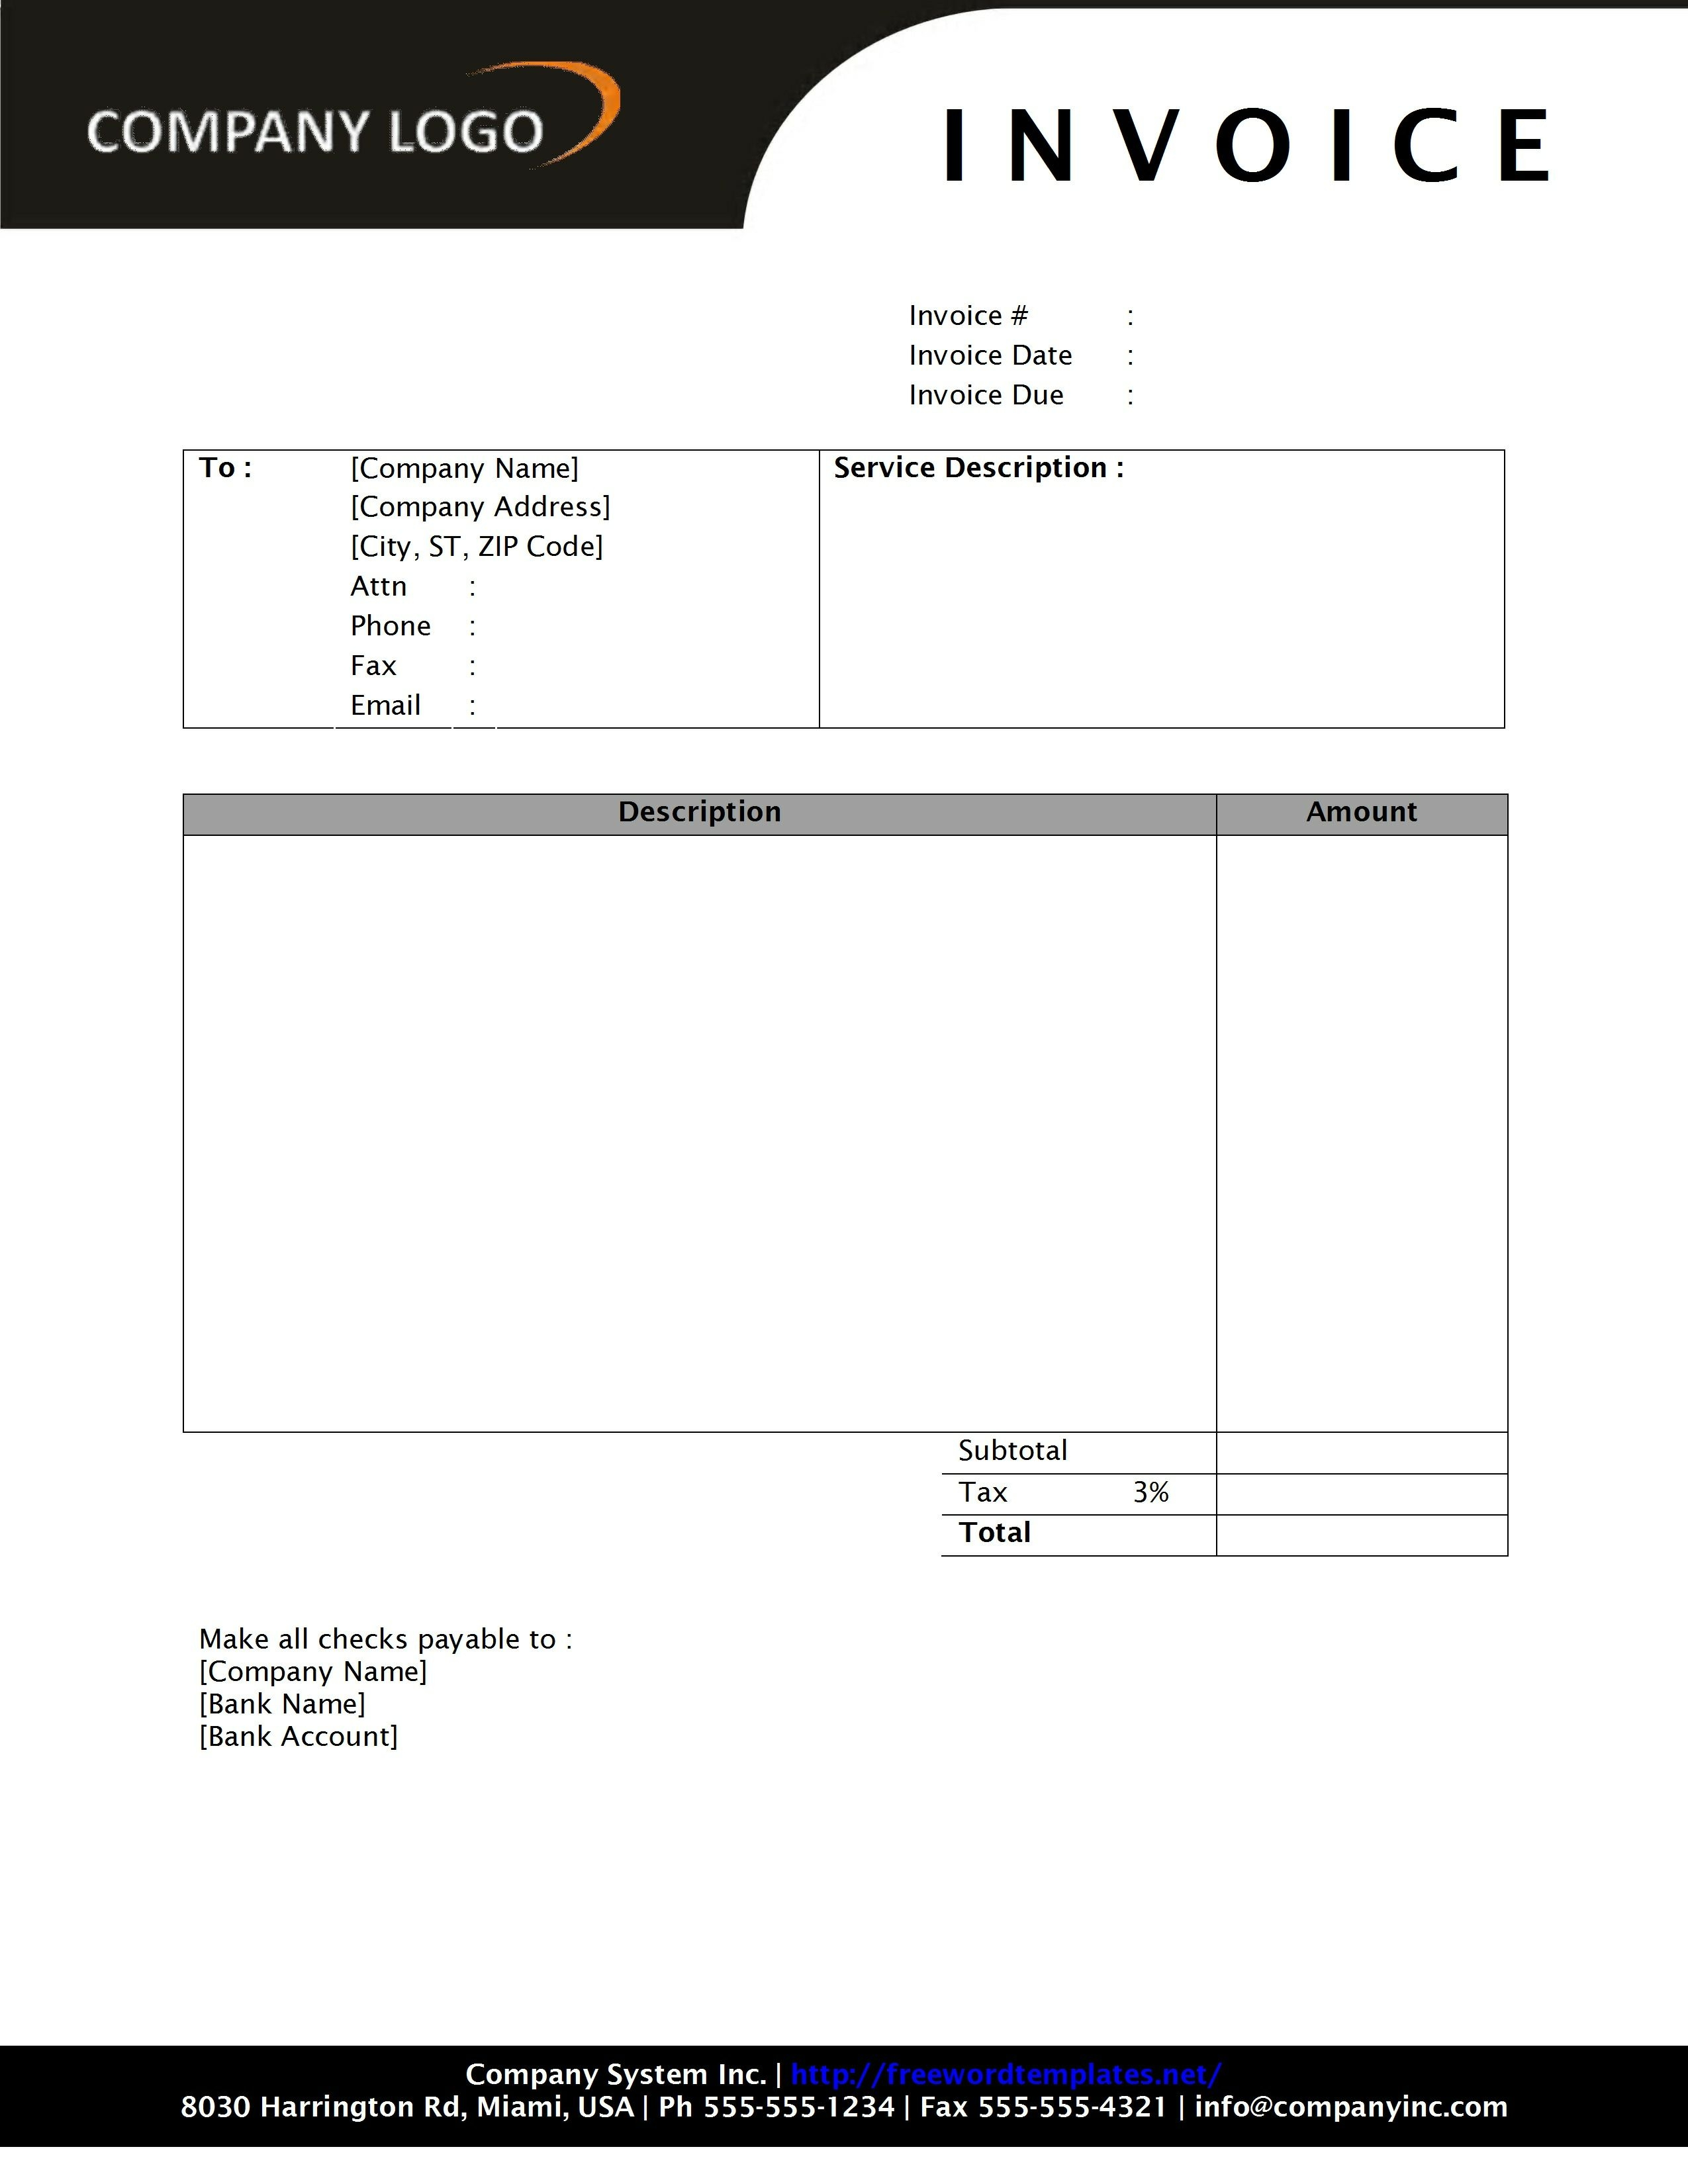 microsoft word invoice template free download increment letter ms word invoice template free download